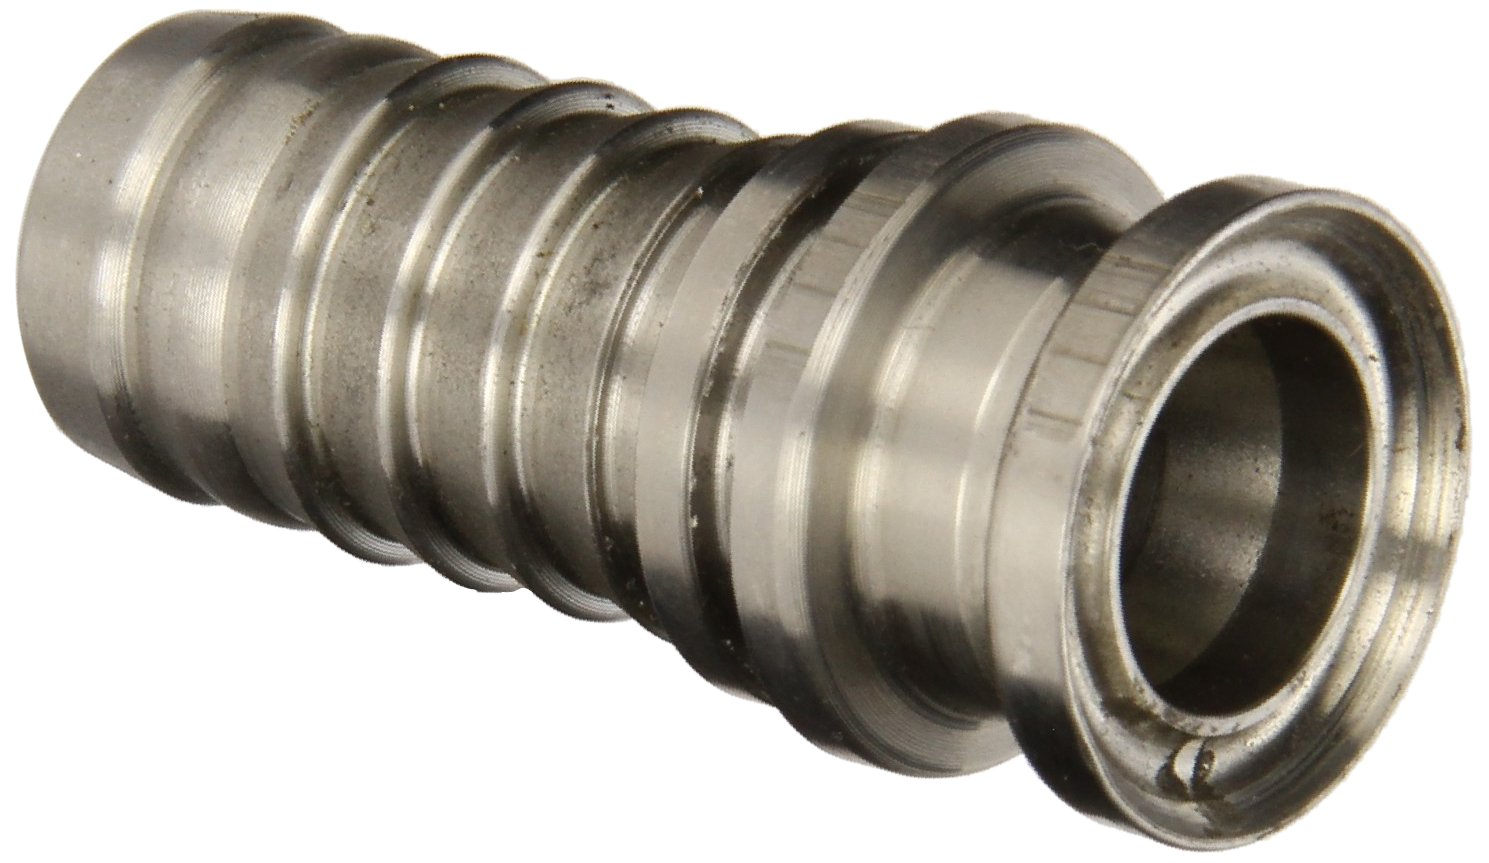 "PT Coupling Progrip C50 Crimp System Series Stainless Steel 304 Hose Fitting, Adapter, 1-1/2"" Sanitary Body Tri-Clamp"